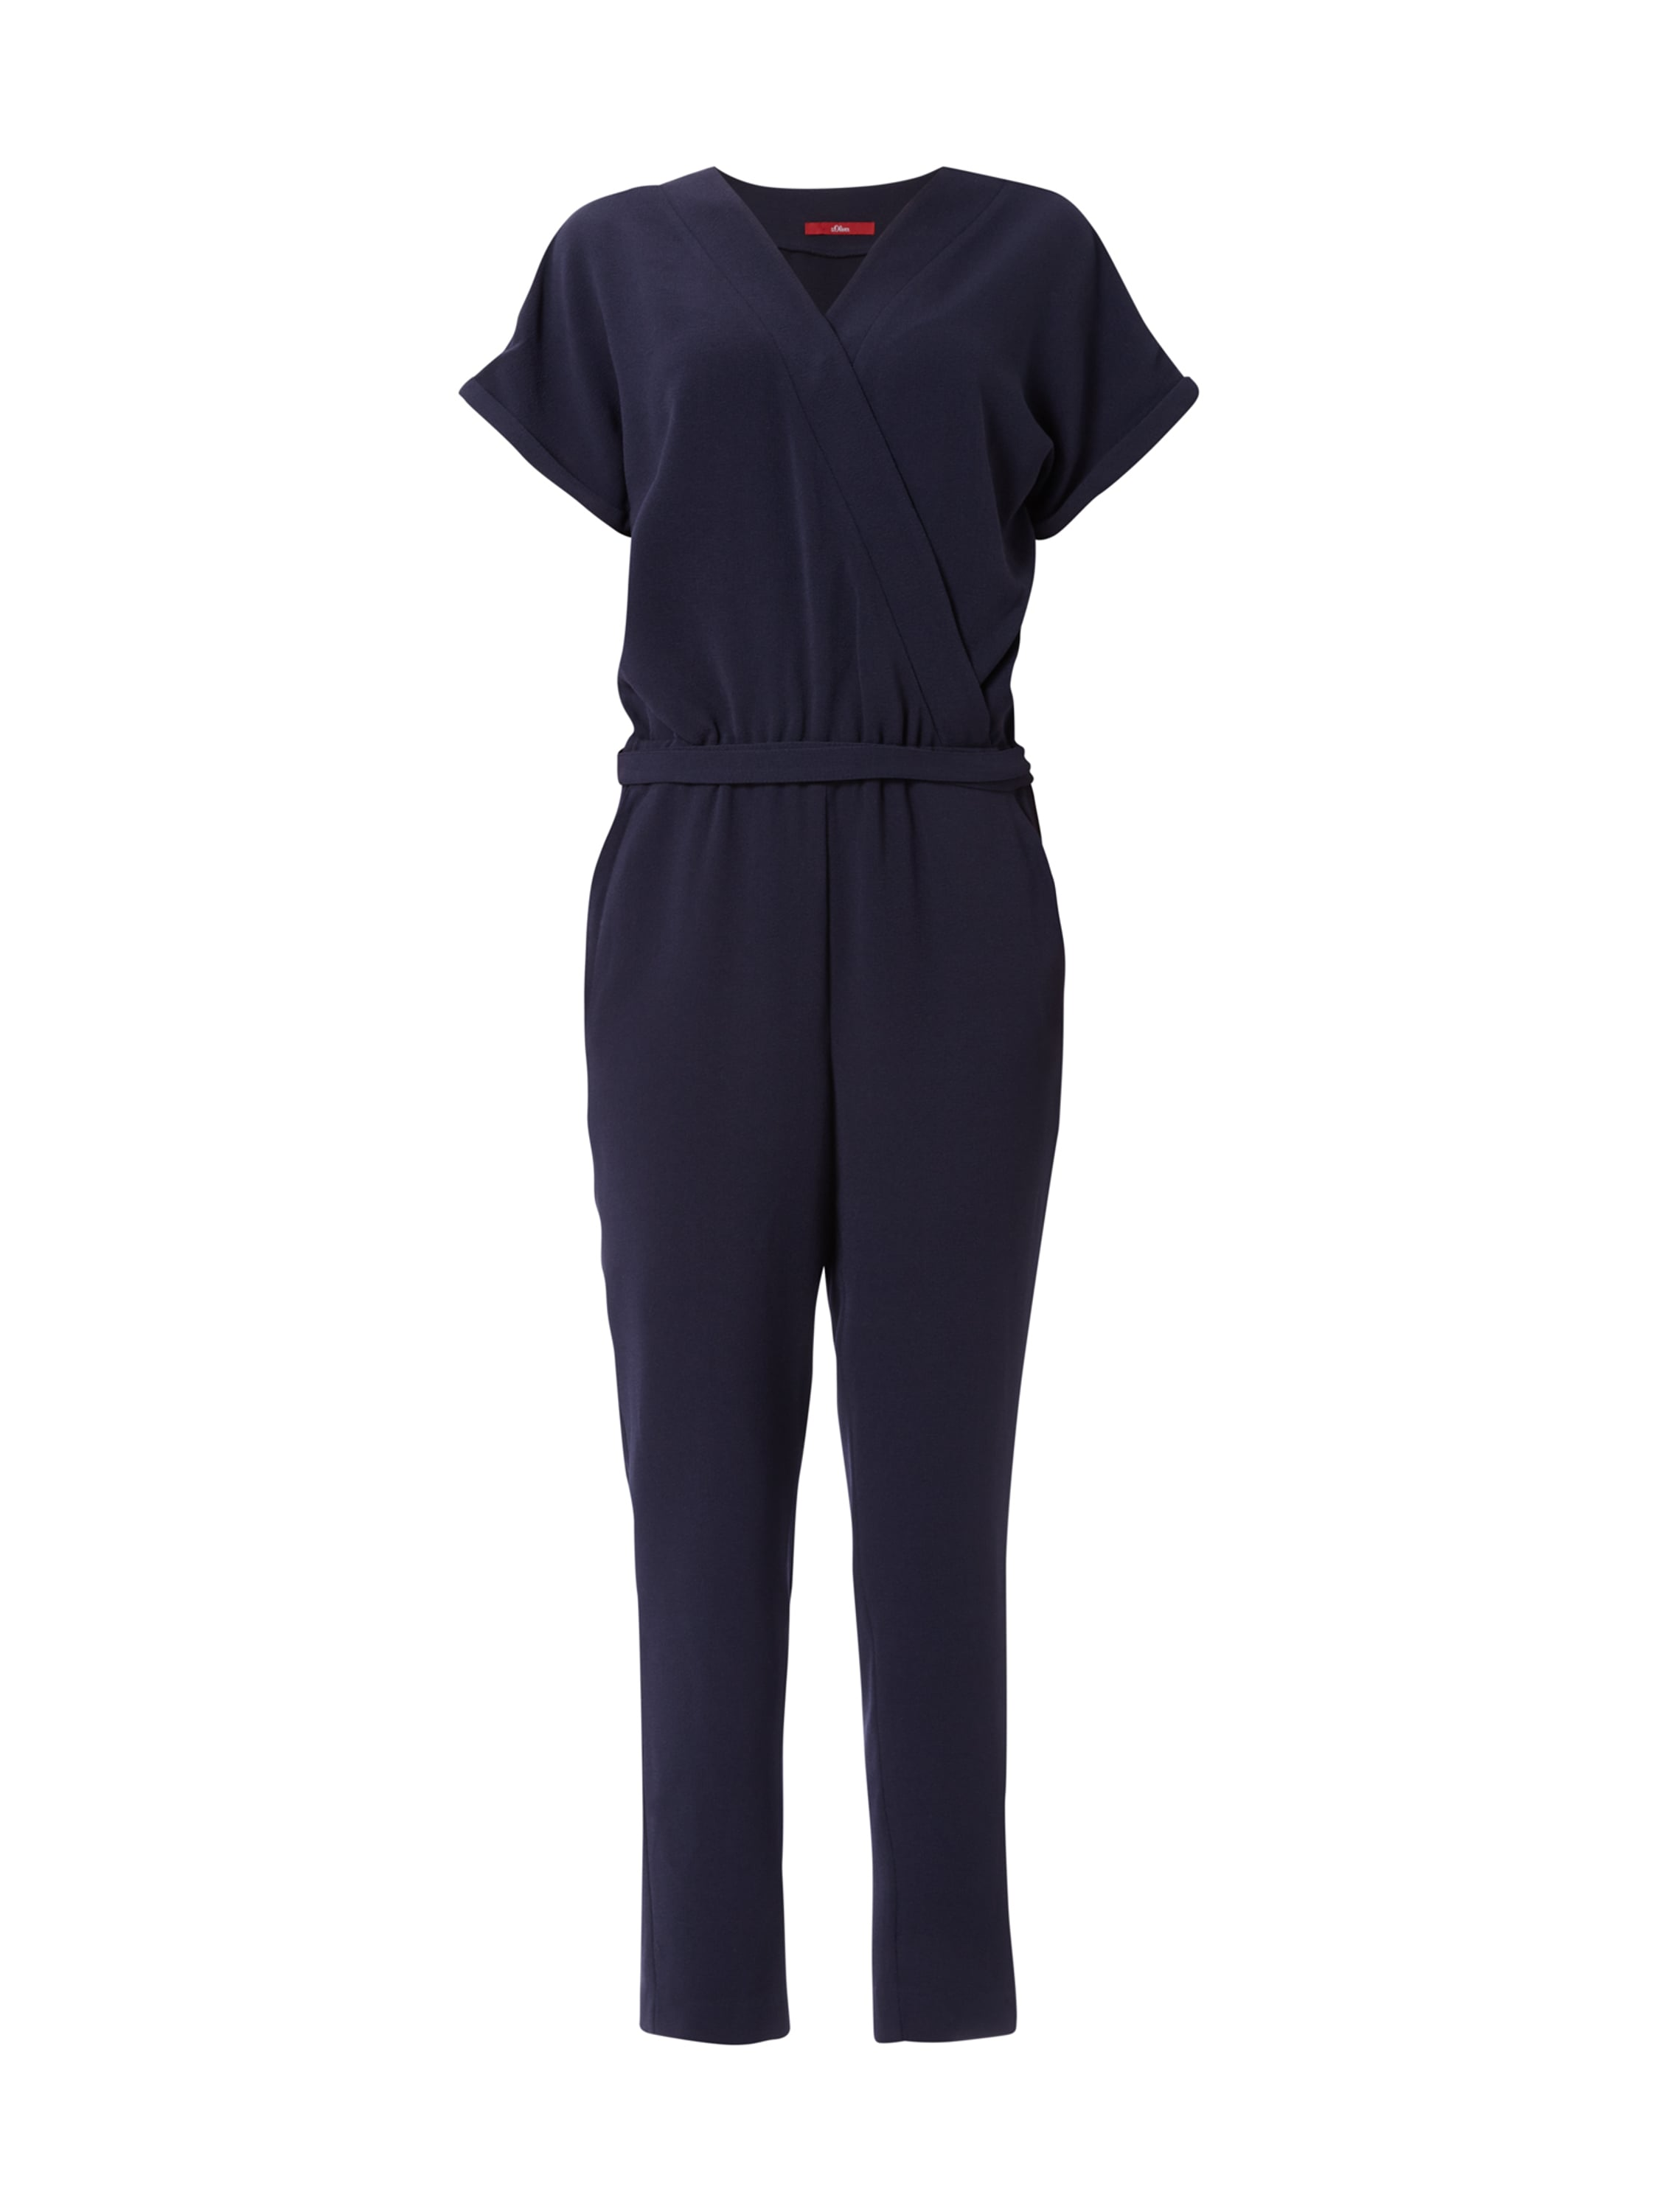 s oliver jumpsuit aus krepp mit tailleng rtel in blau. Black Bedroom Furniture Sets. Home Design Ideas